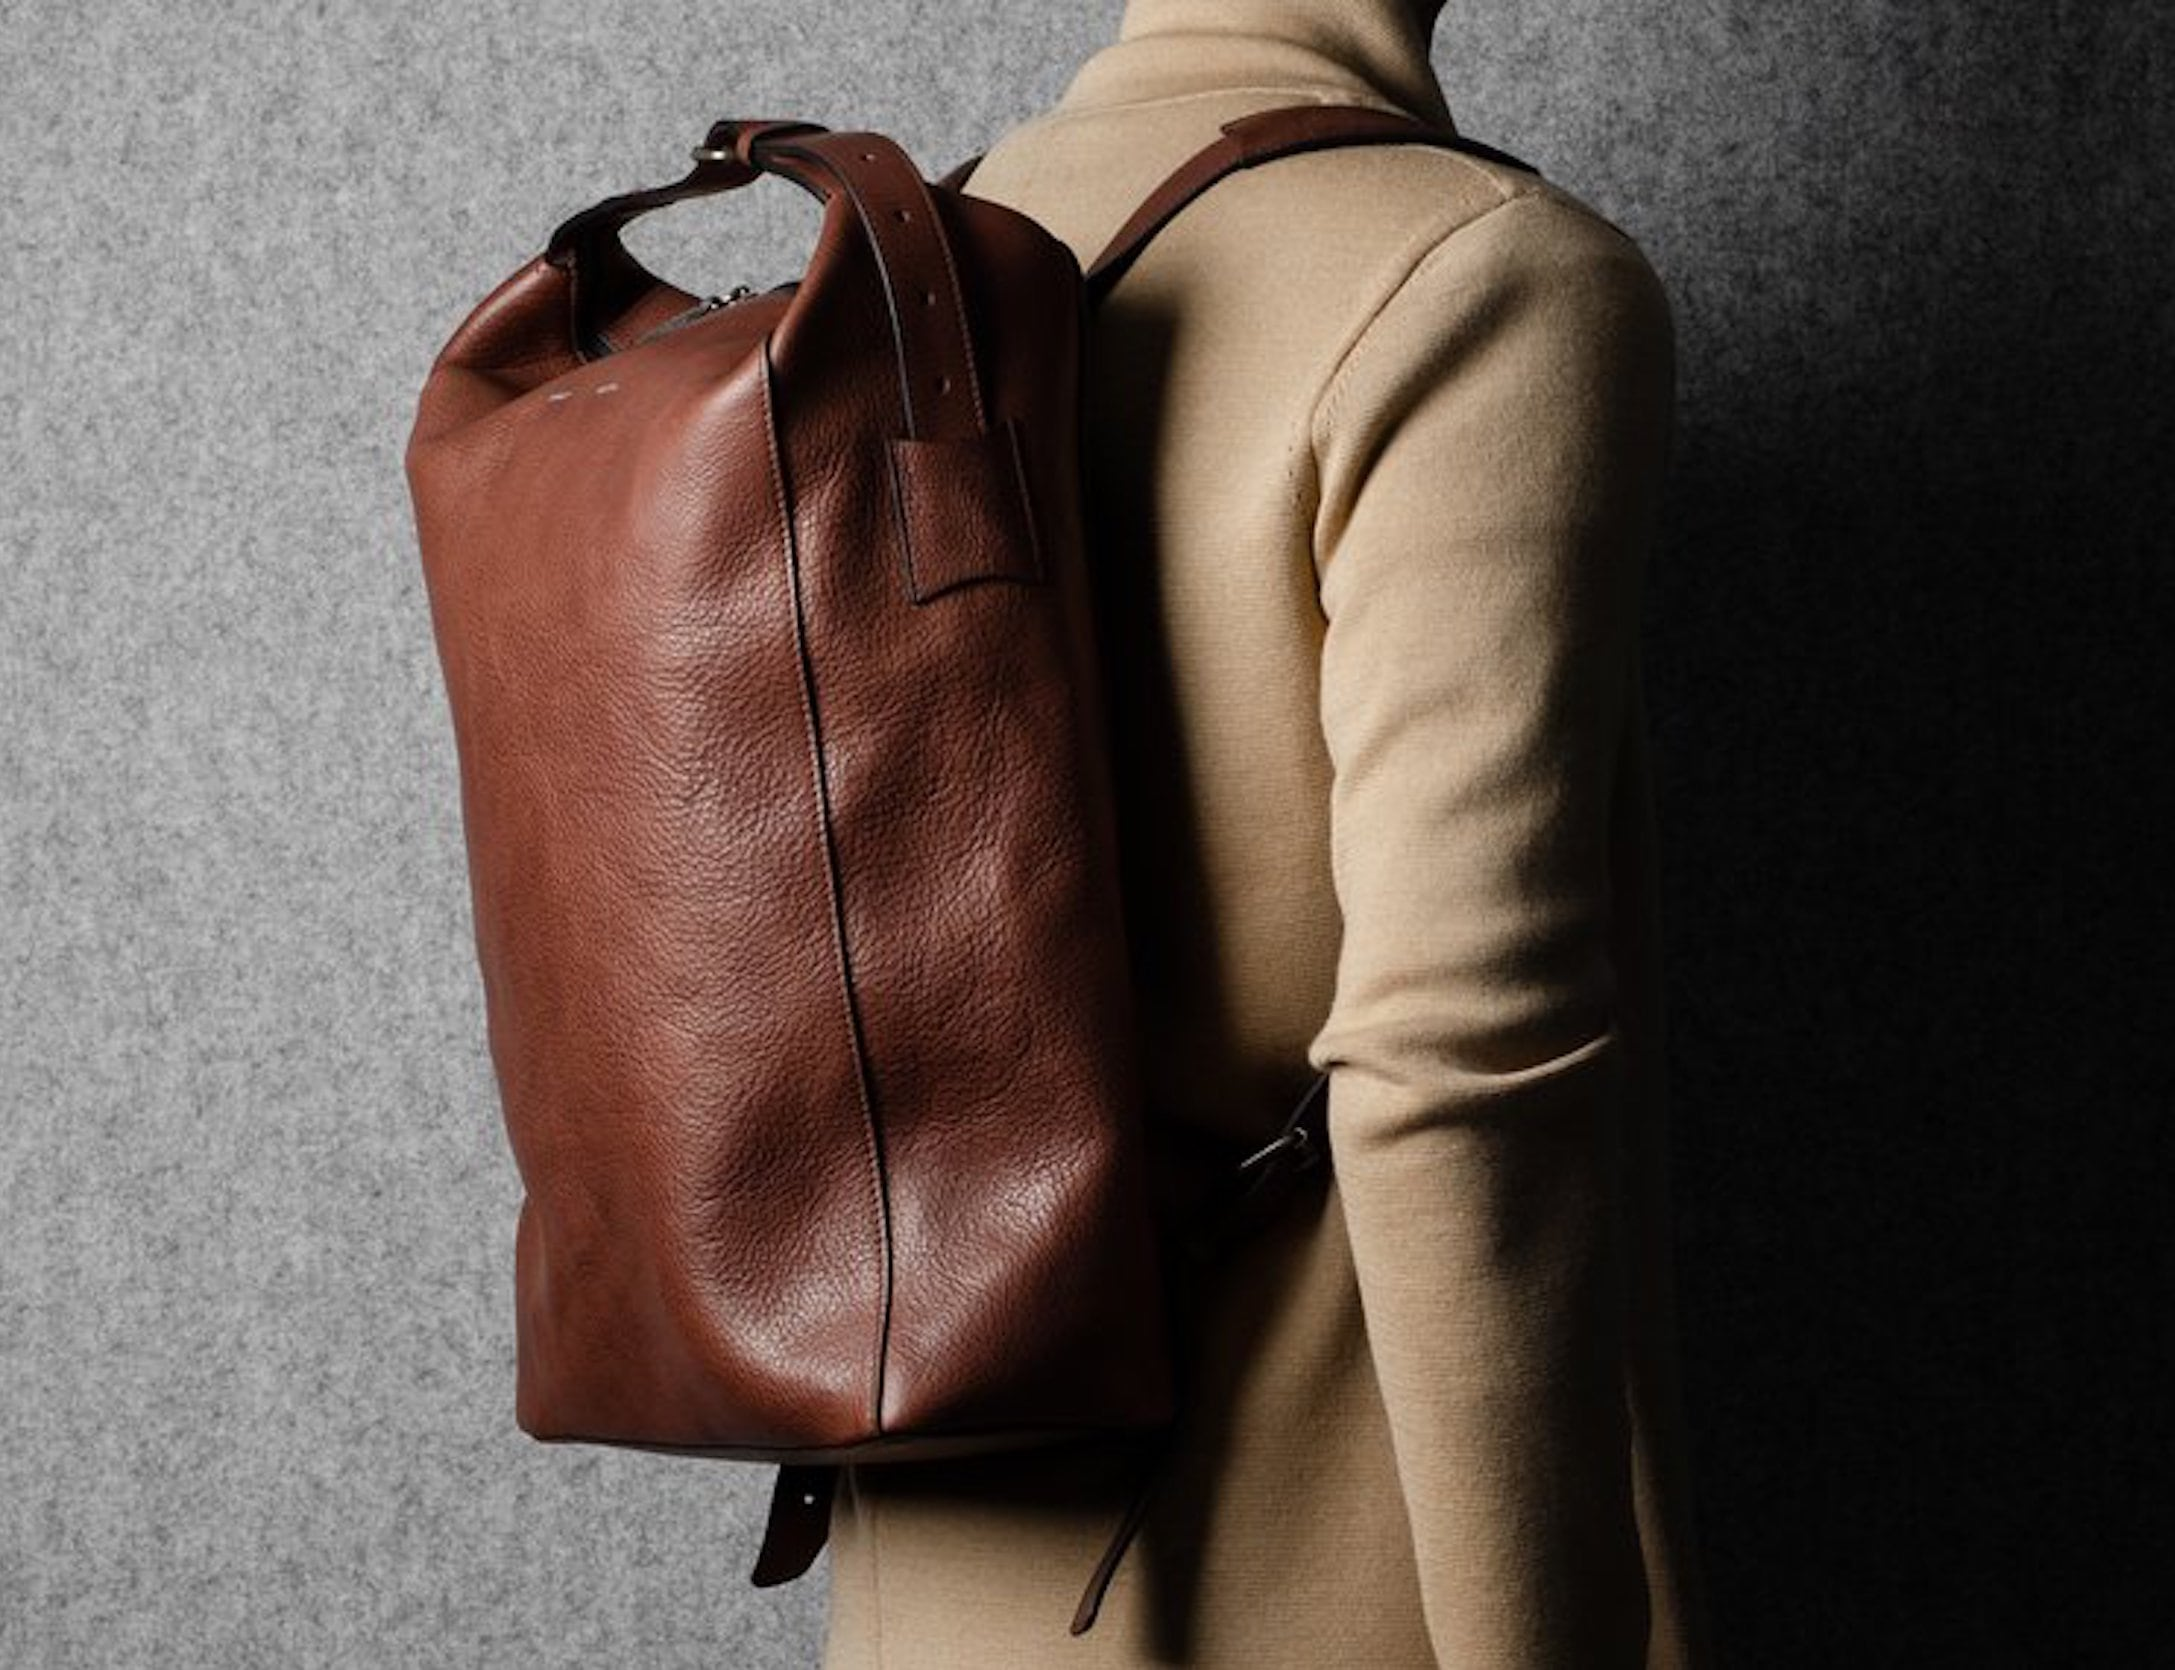 hardgraft Chestnut belted leather backpack has a padded laptop compartment